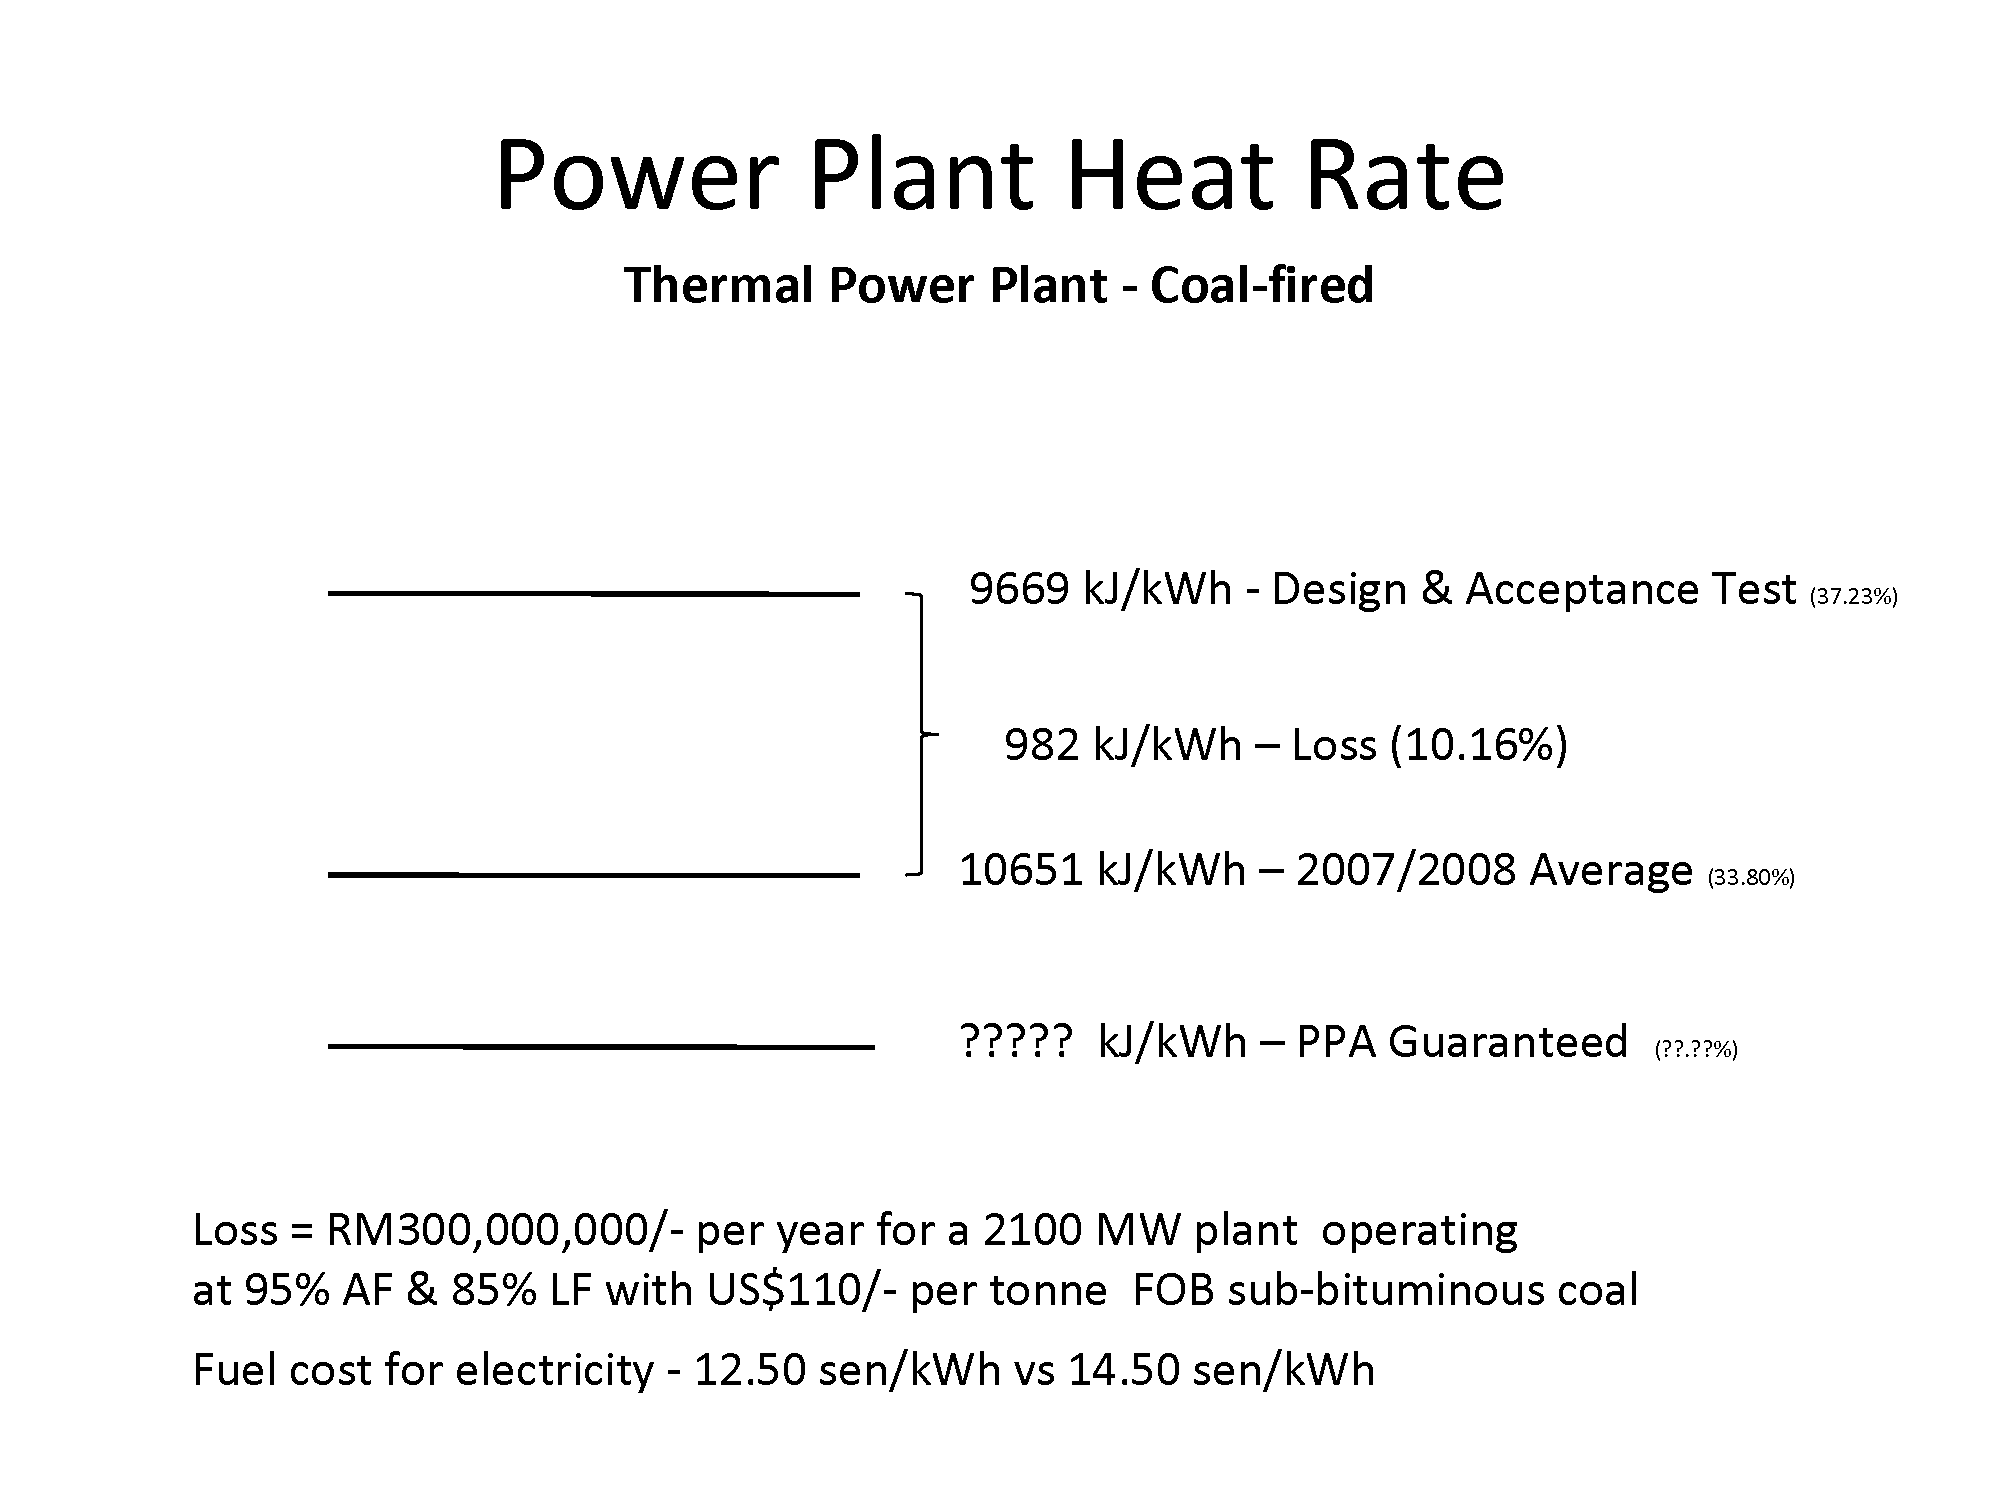 Utility Power Plant Heat Rate